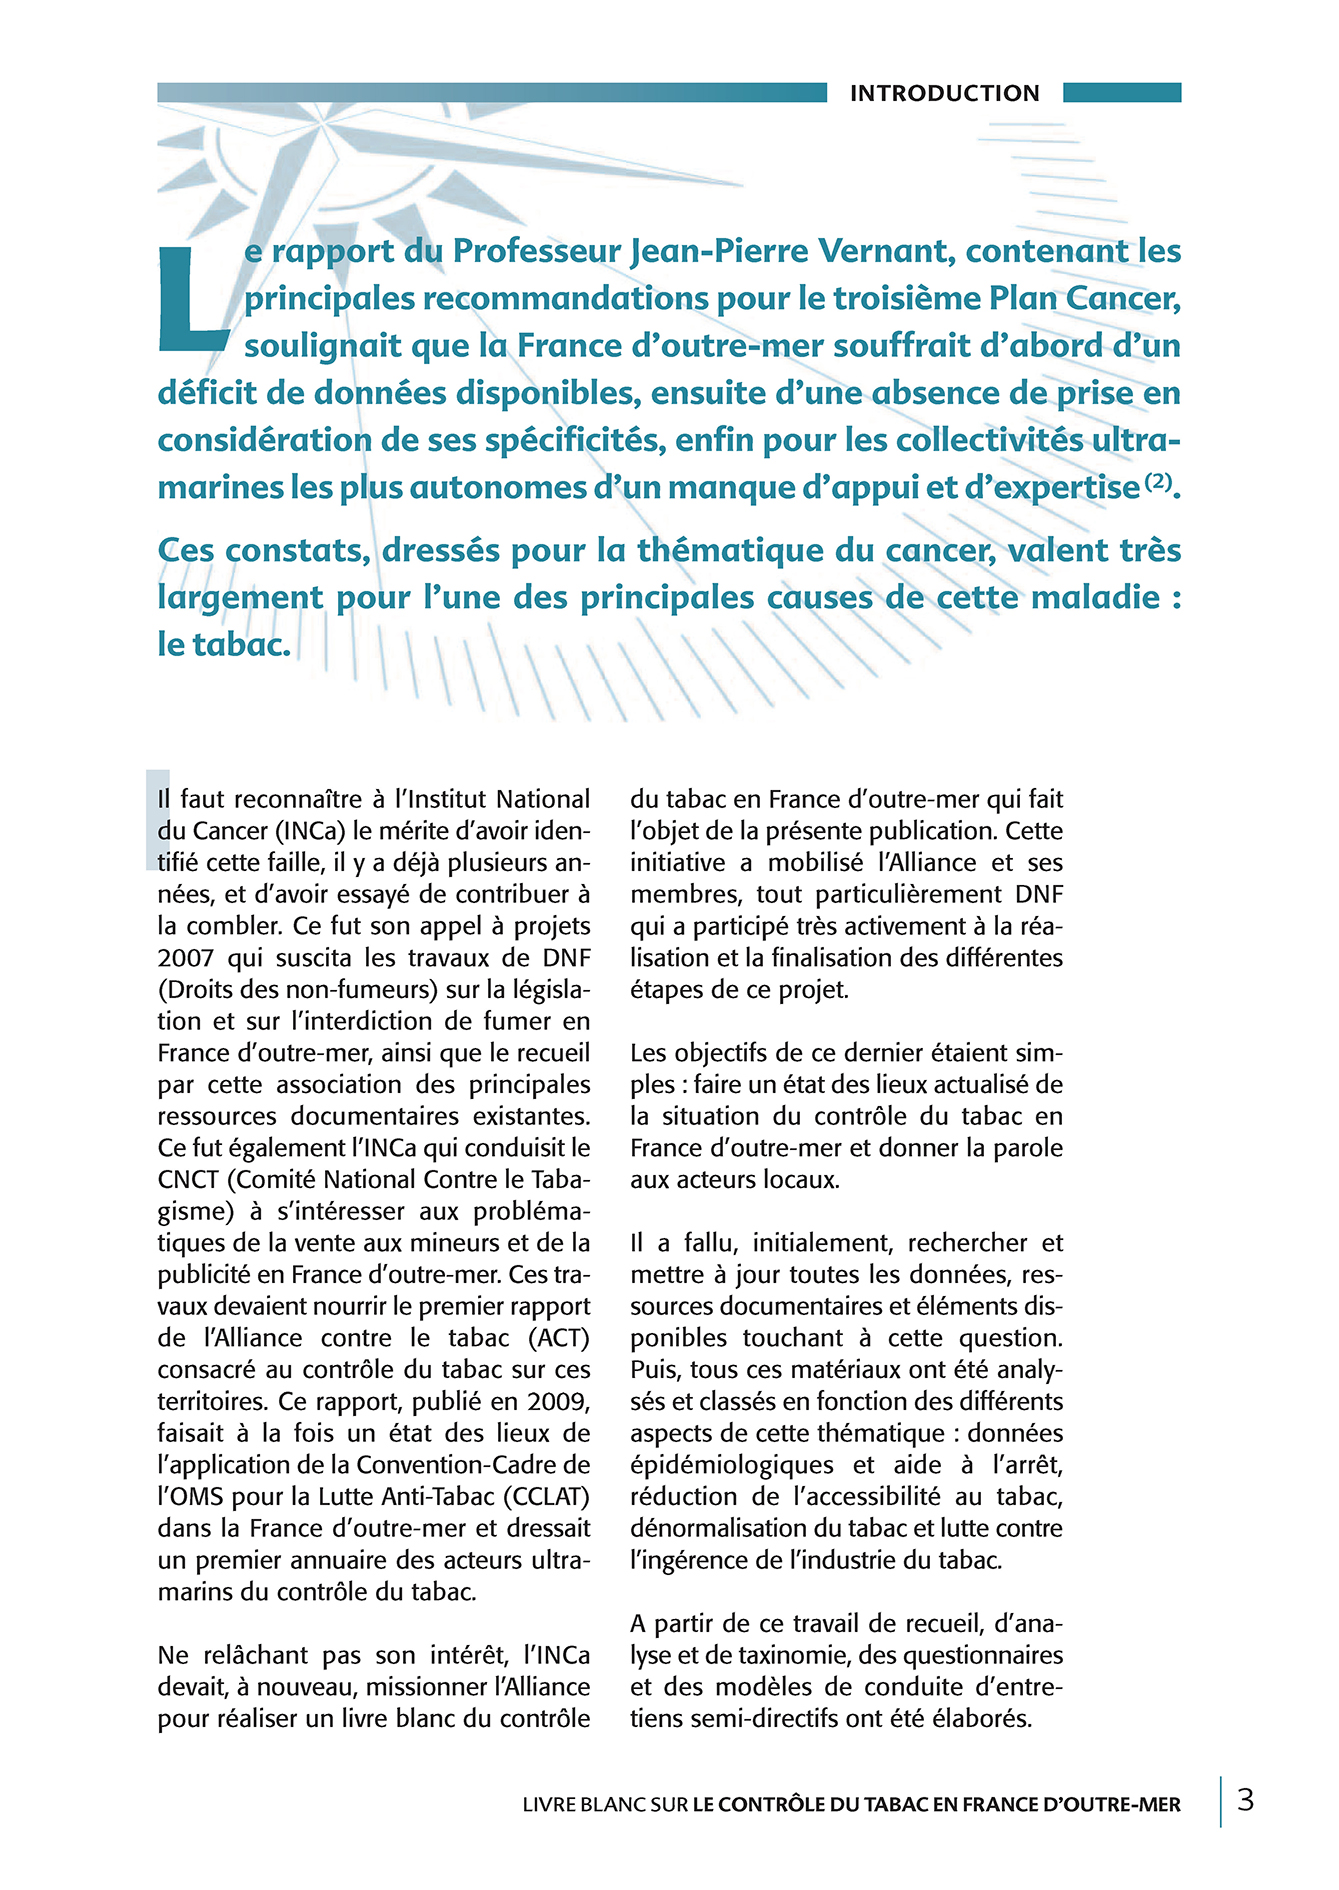 ACT_Livre-blanc-contrôle-tabac-outre-mer-2014_Page_005.jpg